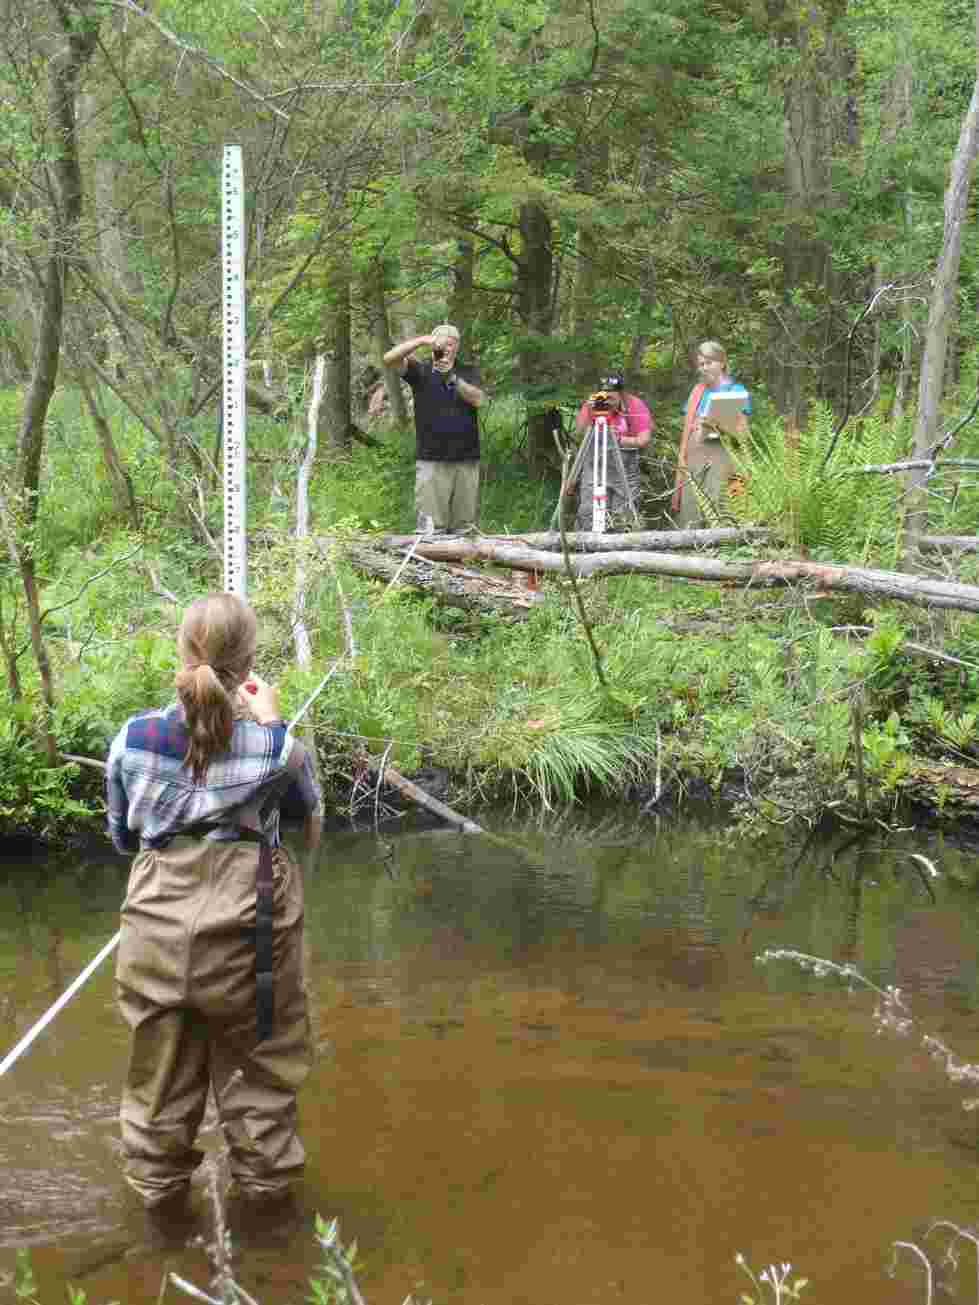 Stream transects were established and surveyed throughout the Duck Creek watershed.